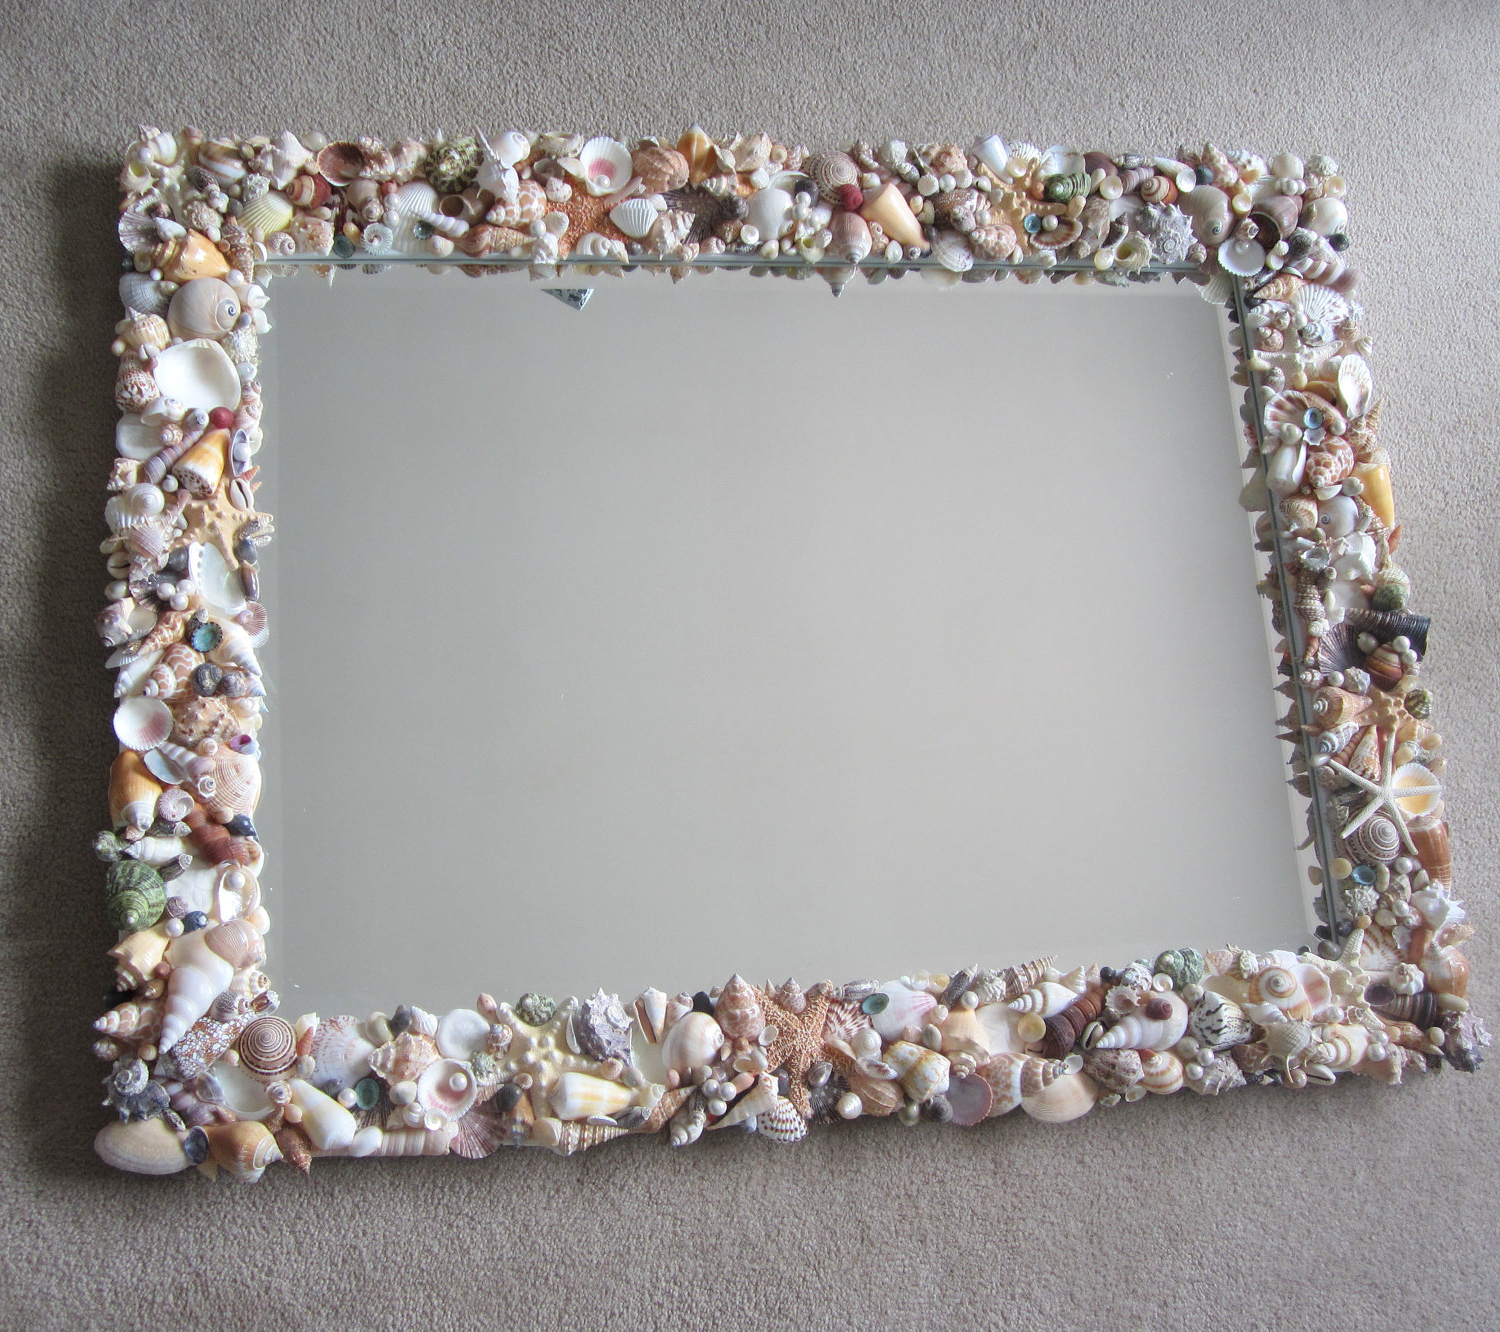 Most Recently Released Seashell Wall Mirrors In Seashell Mirrors For Beach Decor – Nautical Decor Shell Mirror In Natural Or All White, Lg Rectangular (View 6 of 20)